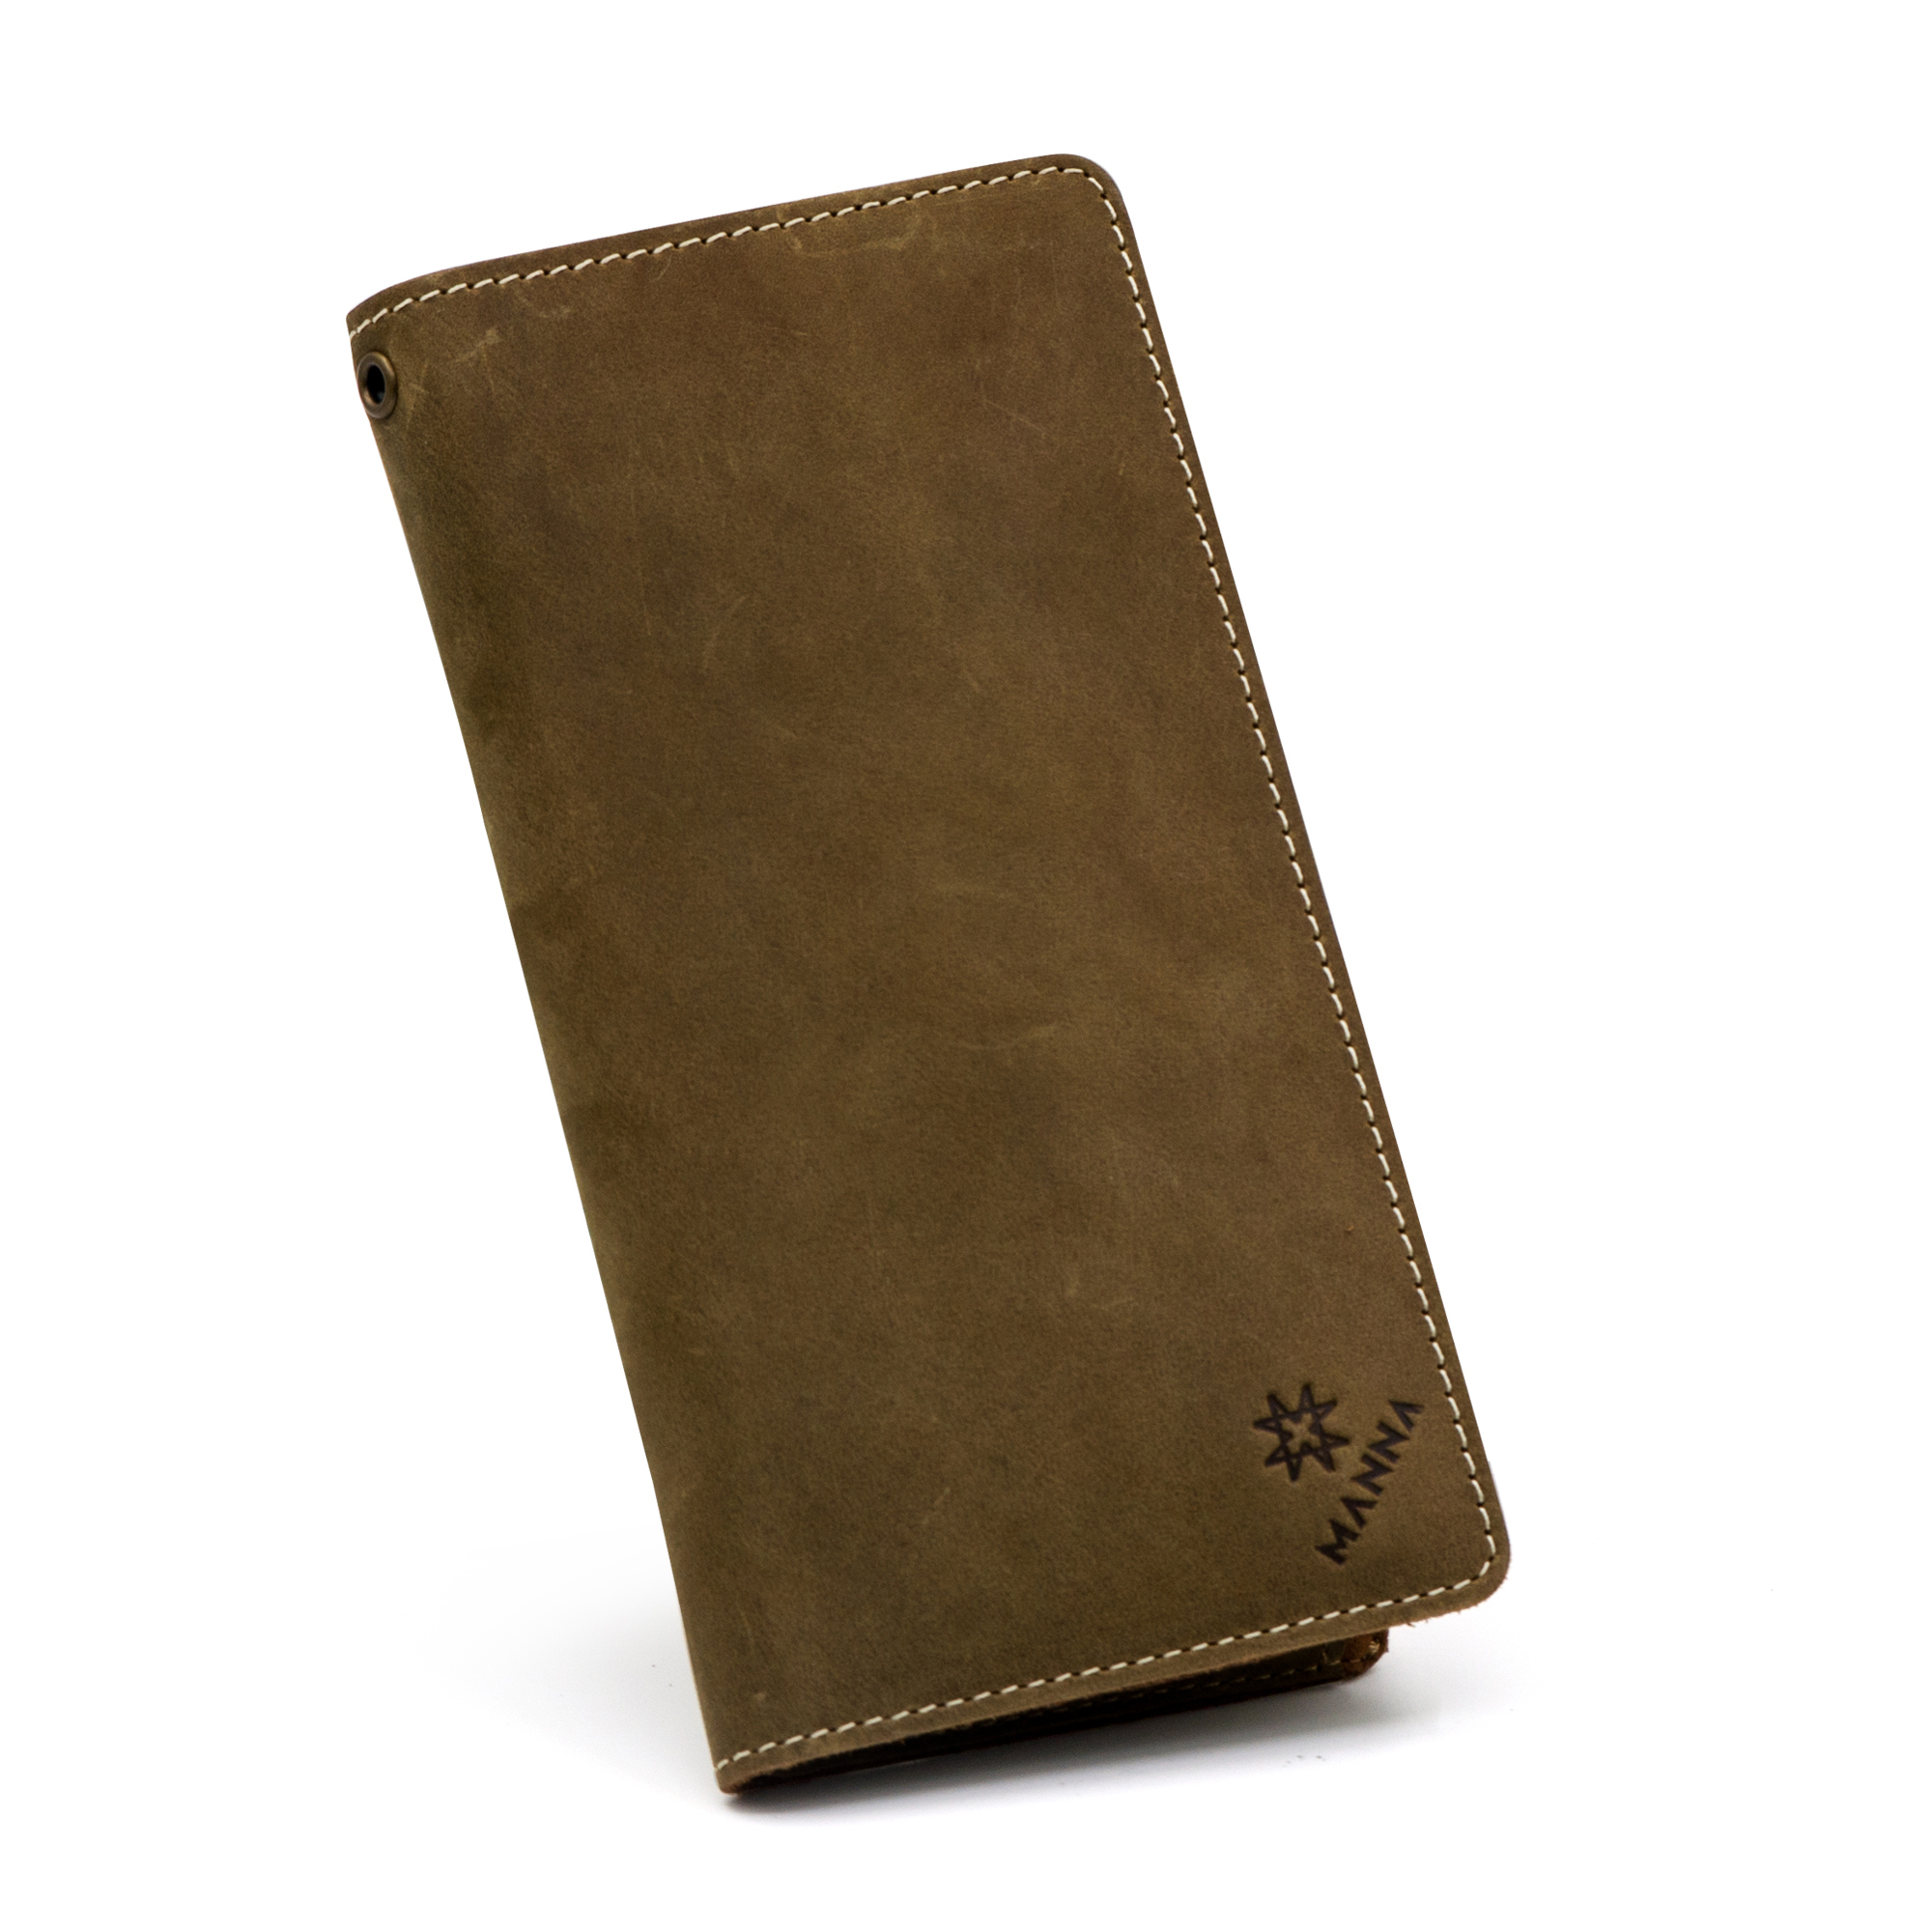 sports shoes 178bd 27722 Leicke | Genuine Leather Smartphone Wallet Purse Clutch